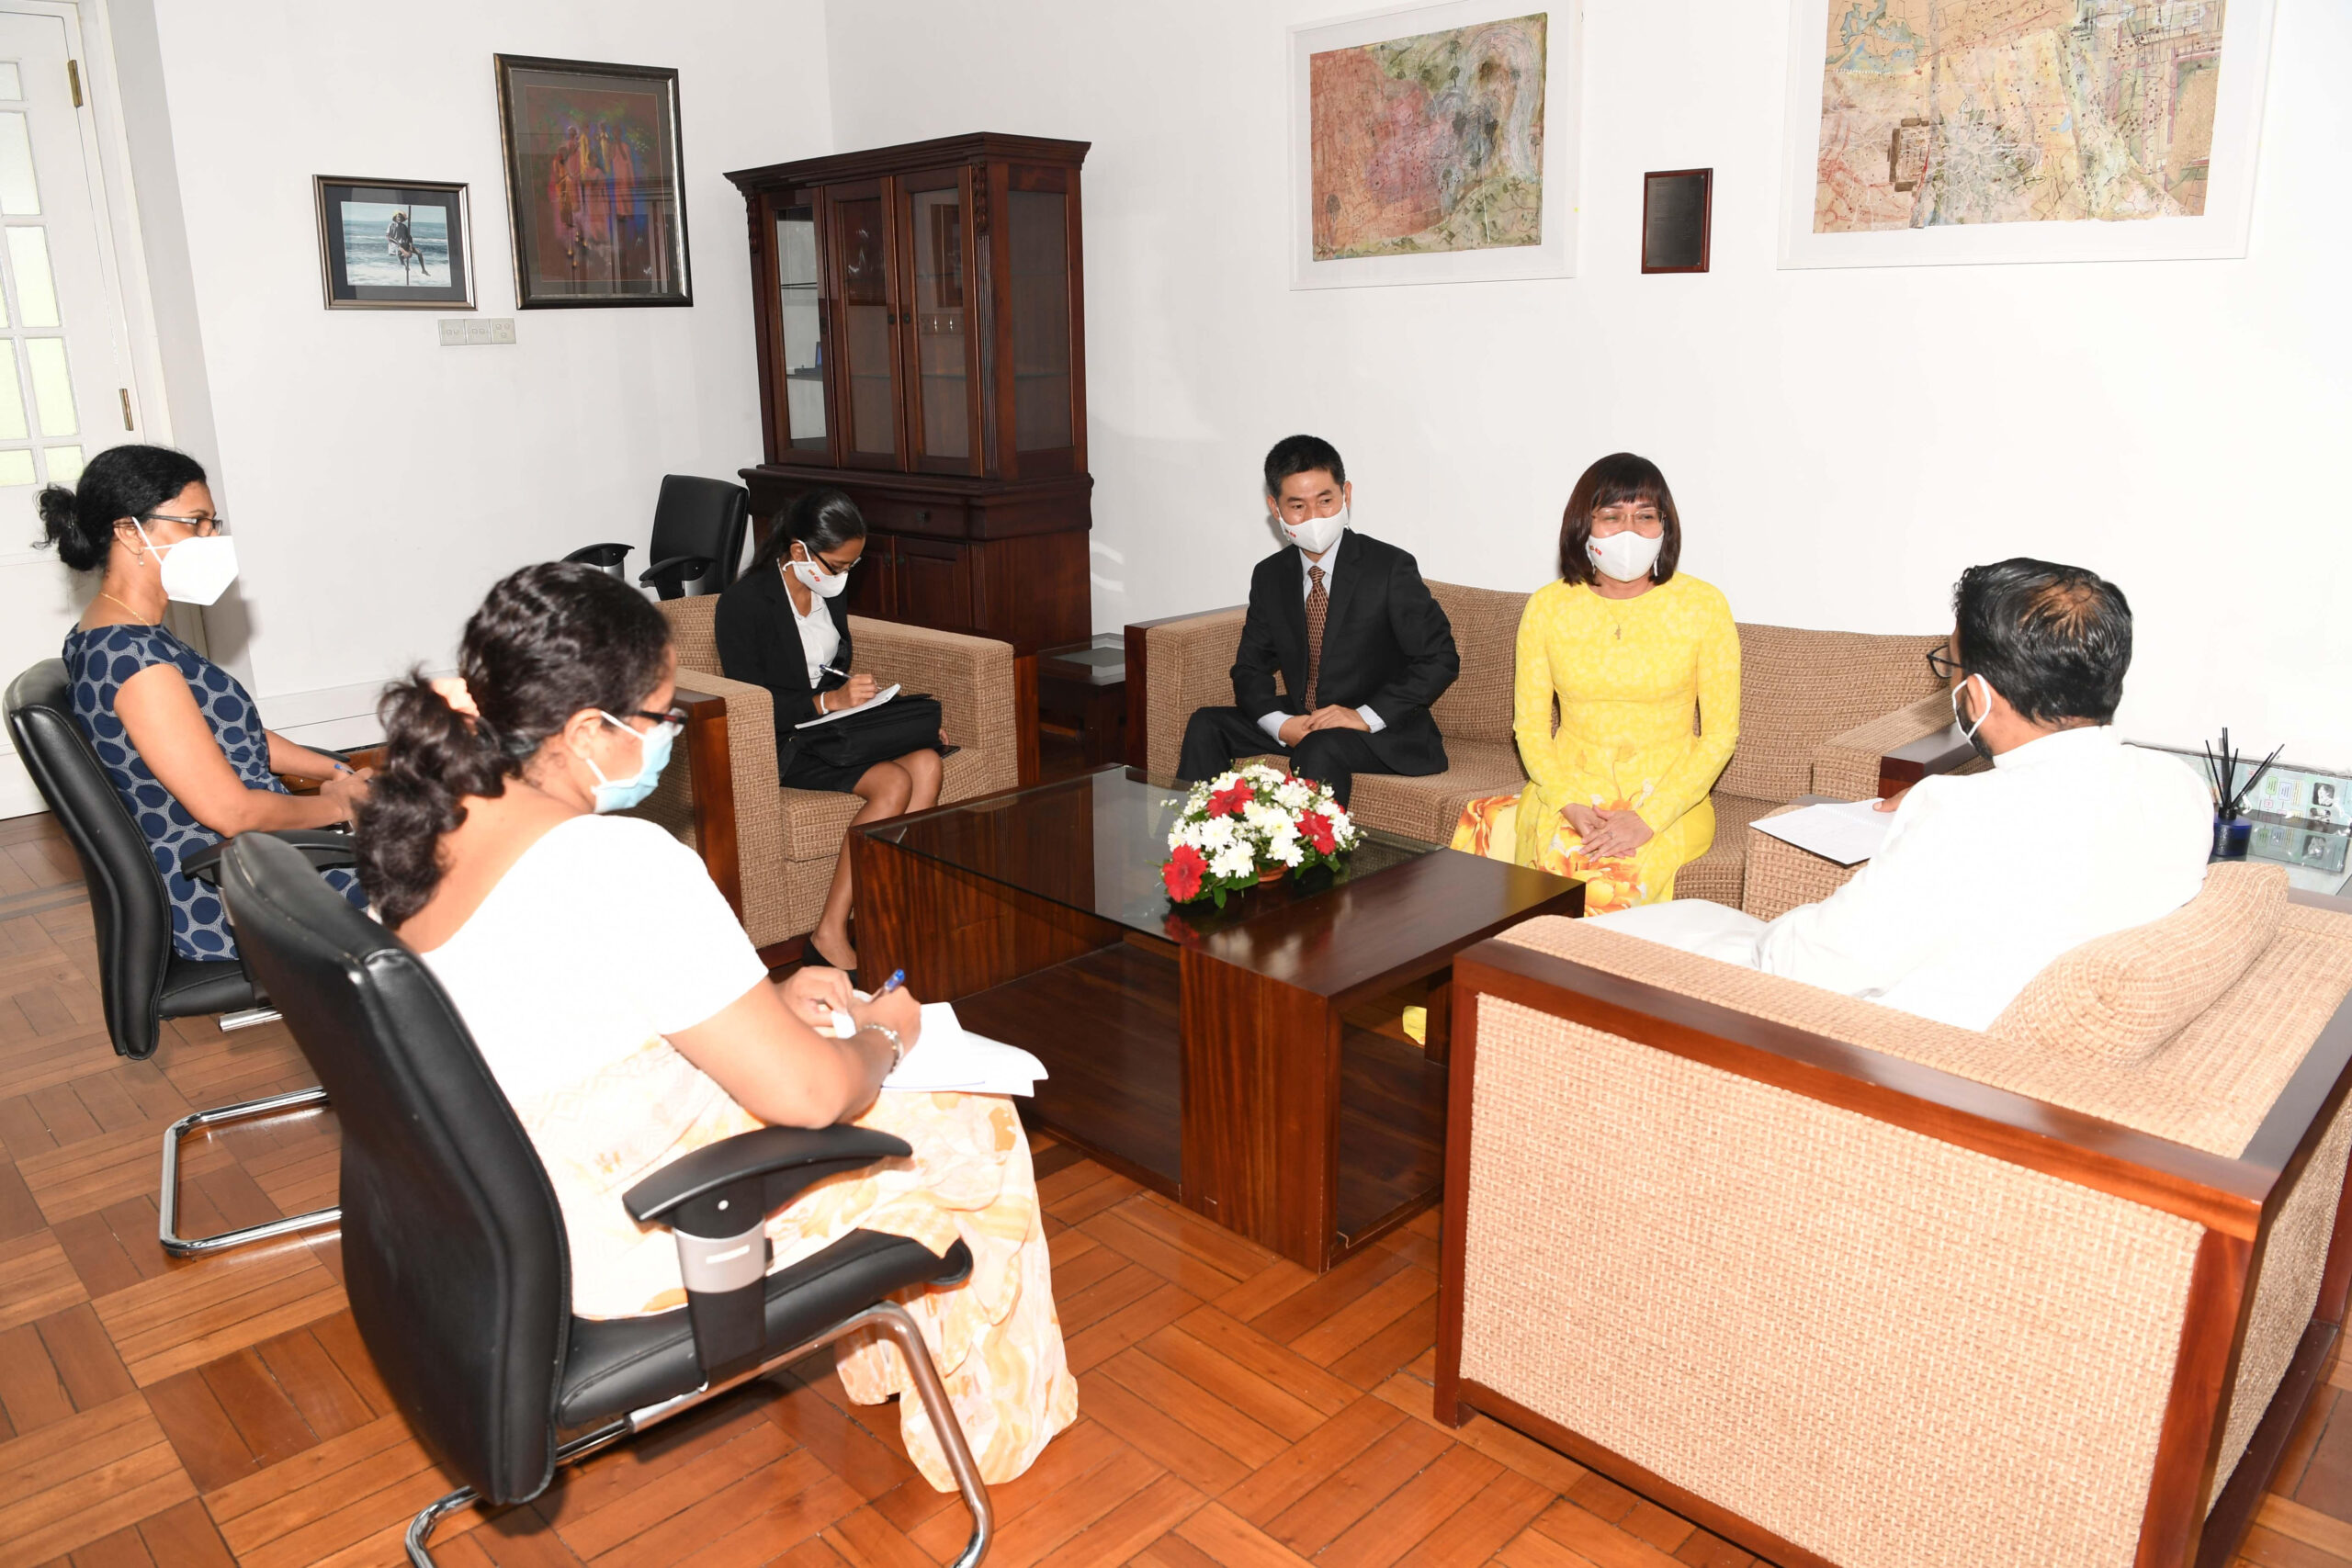 Viet Nam Sri Lanka Bilateral Relations to get a boost in Organic Farming, Investments in IT Sector and Tourism